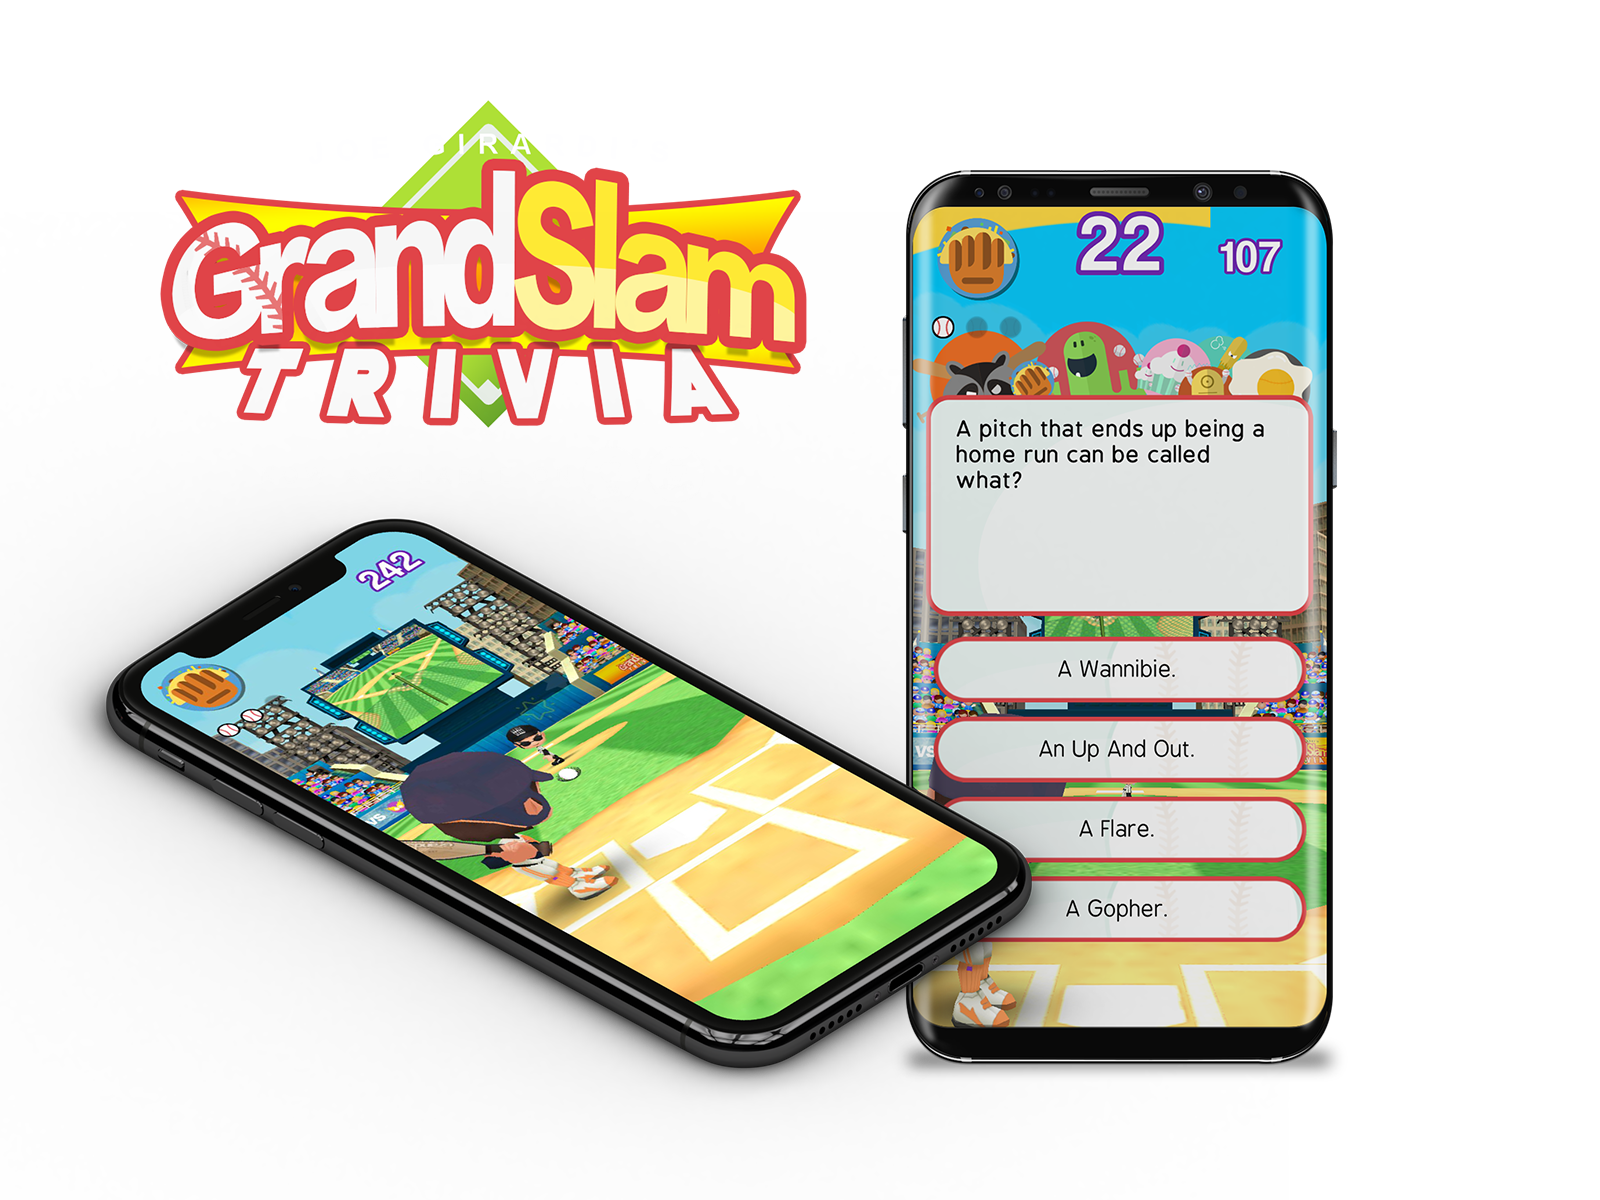 grandslamtrivia-featurednew